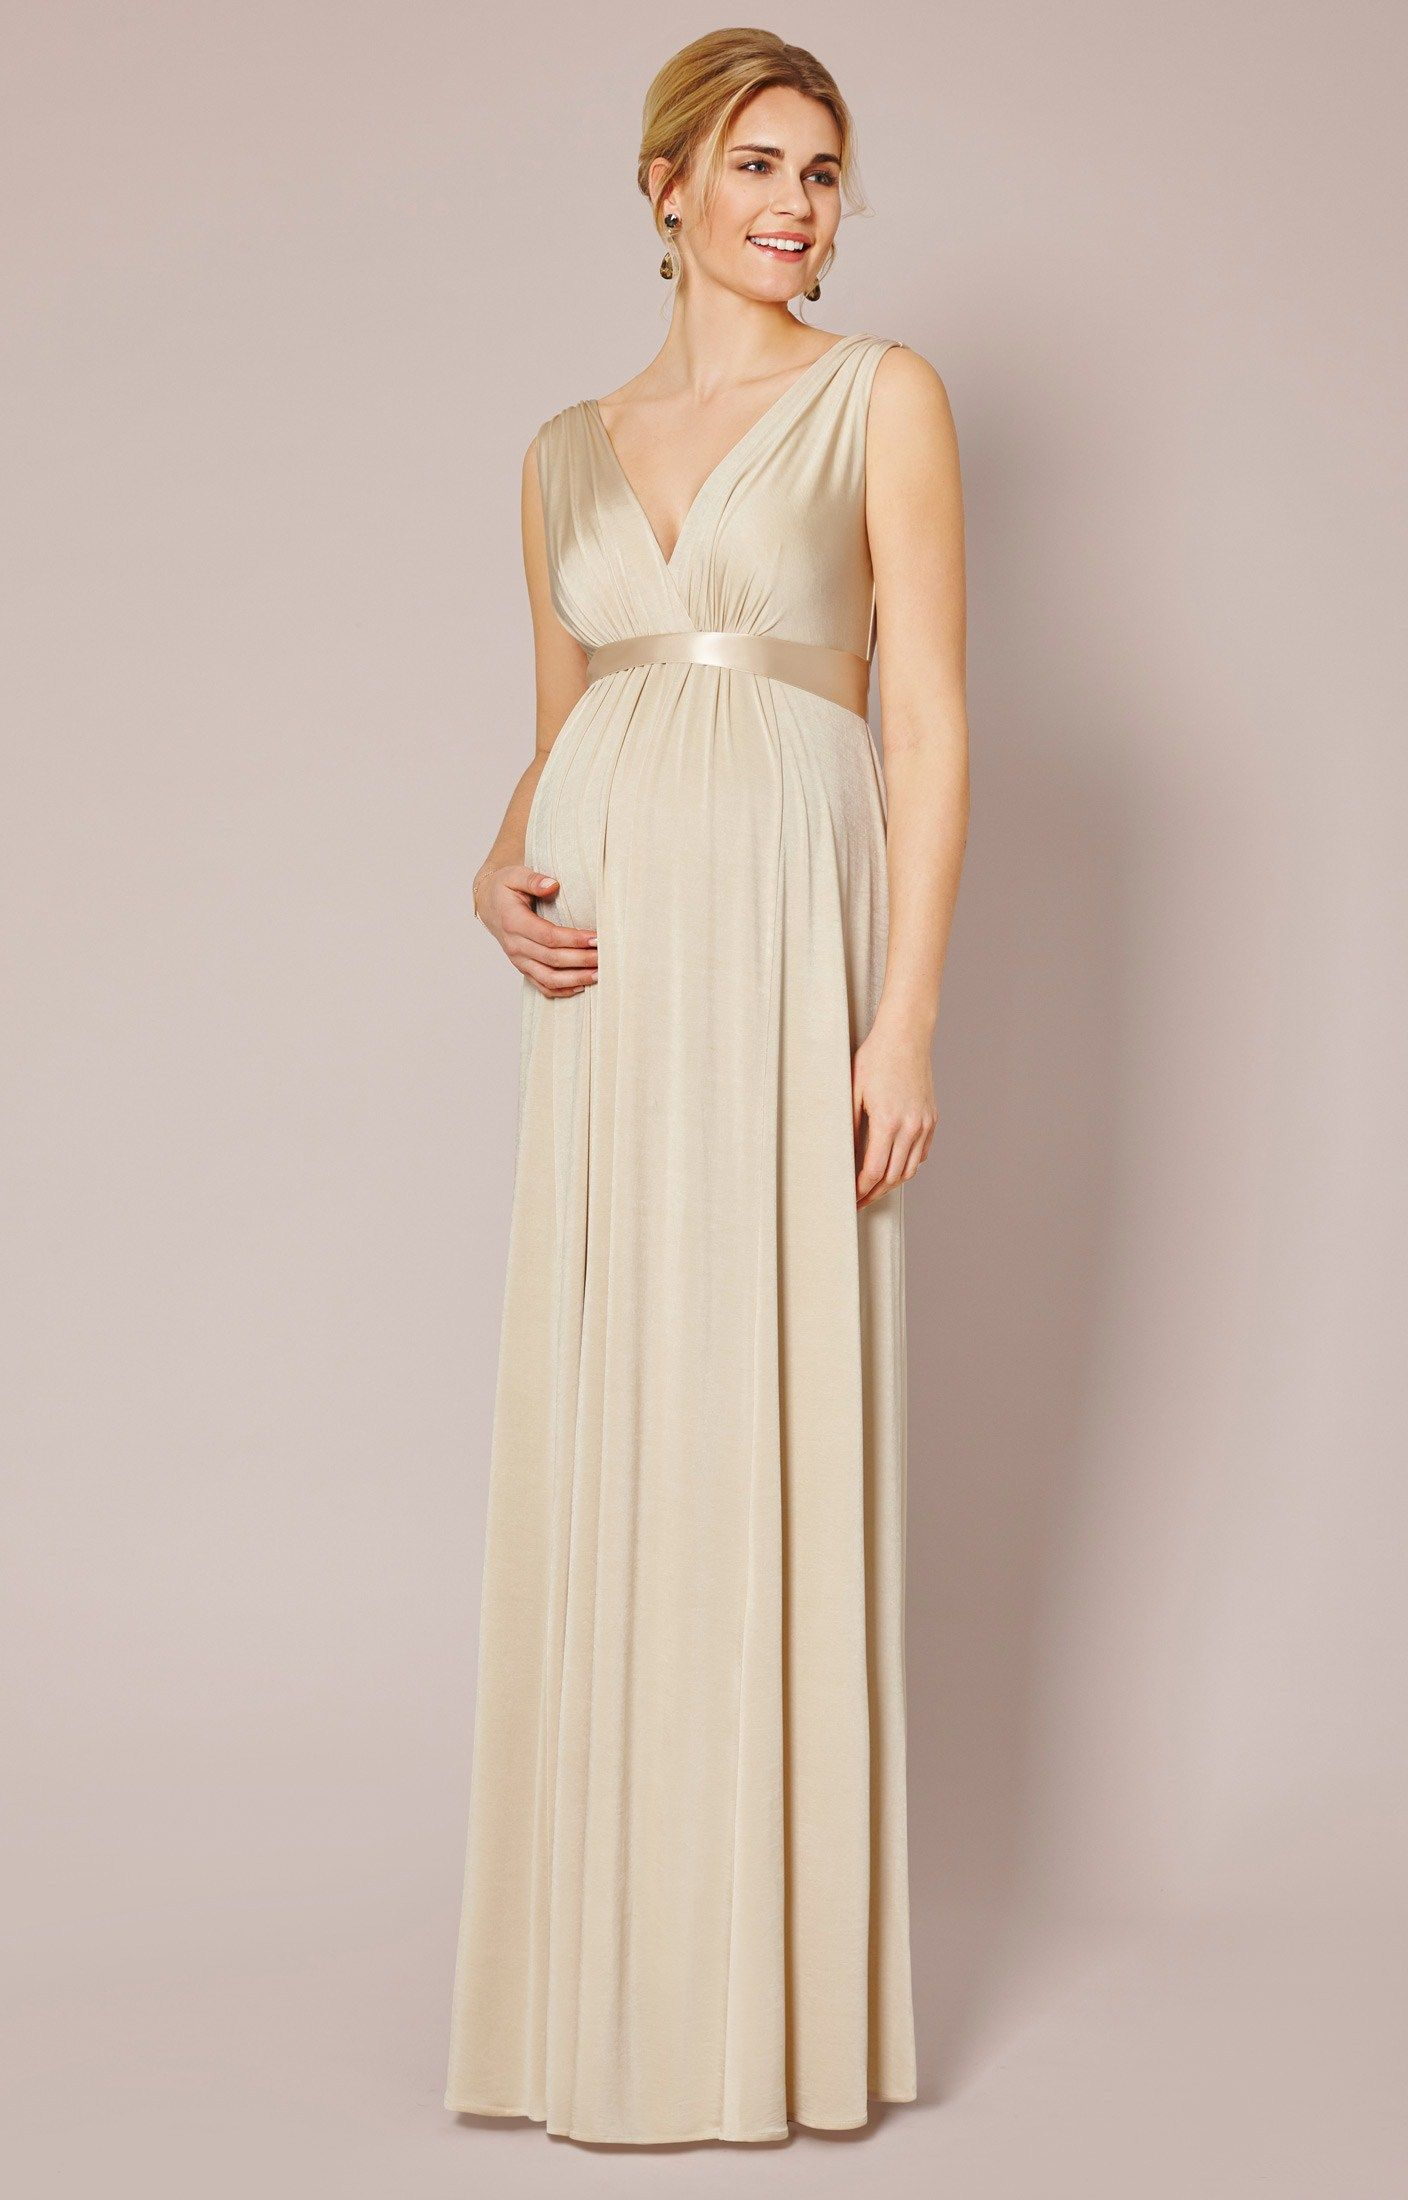 New style designer maternity dresses in black and gold would be